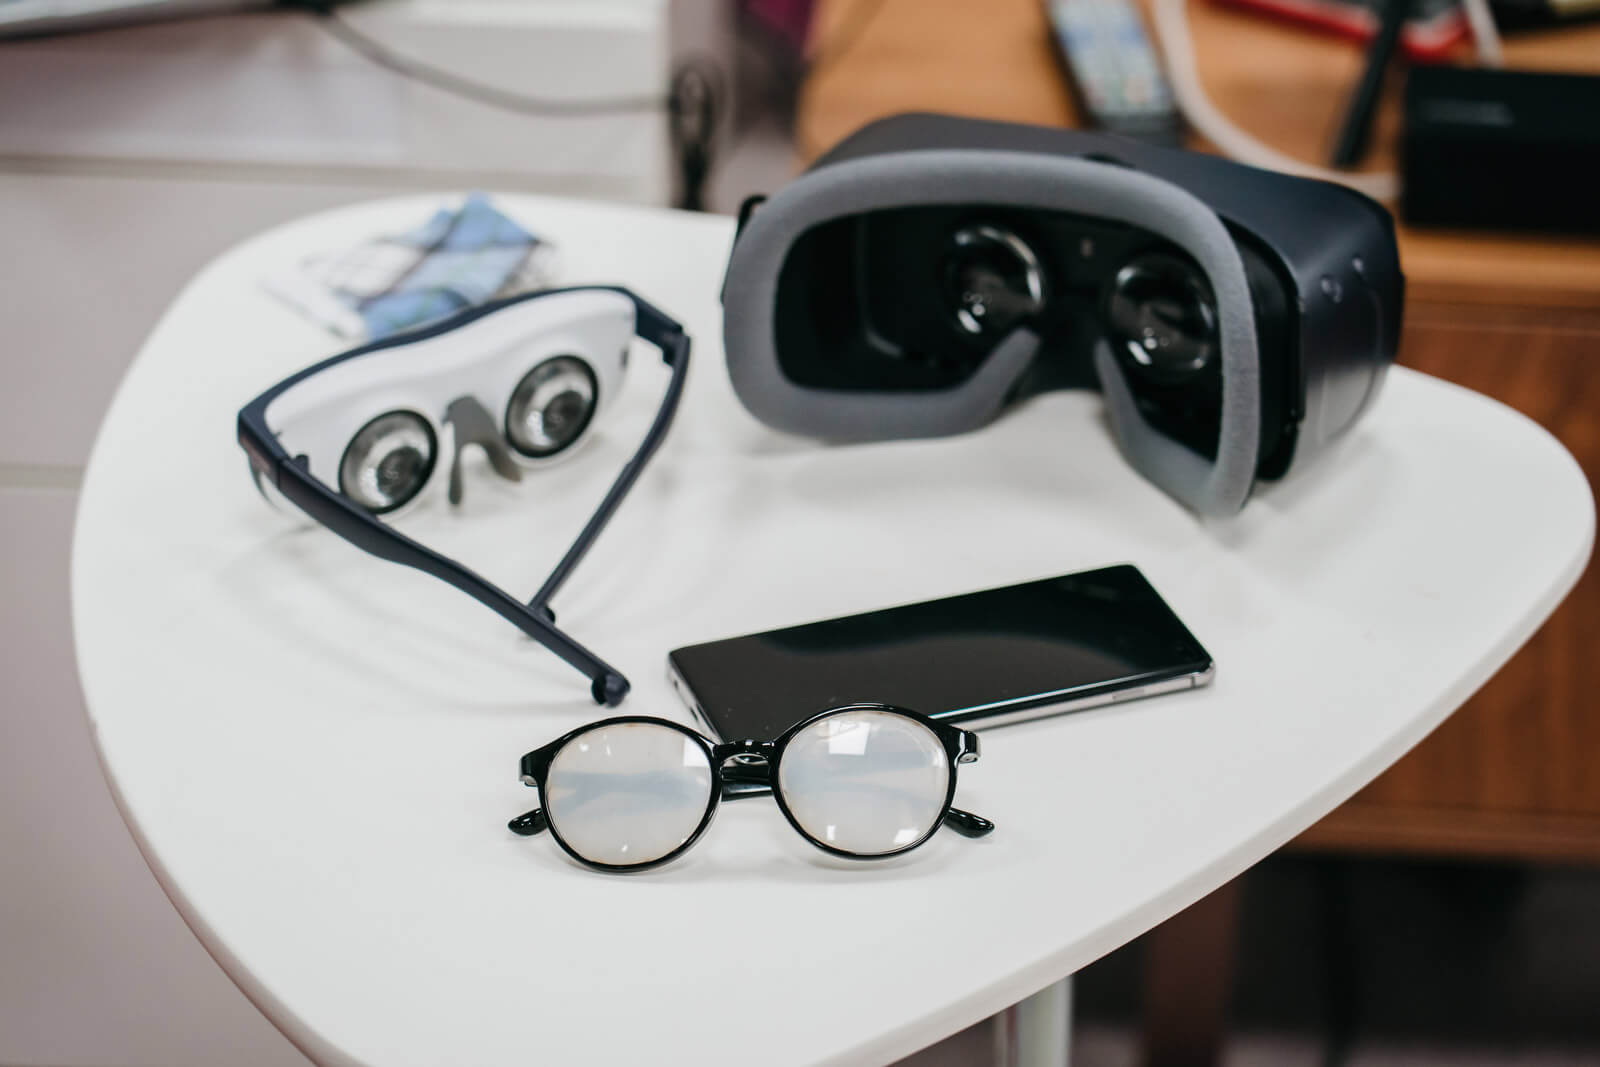 Relúmĭno is a vision-enhancing aid using a VR device and a smartphone app. The idea originated from Samsung's C-Lab.